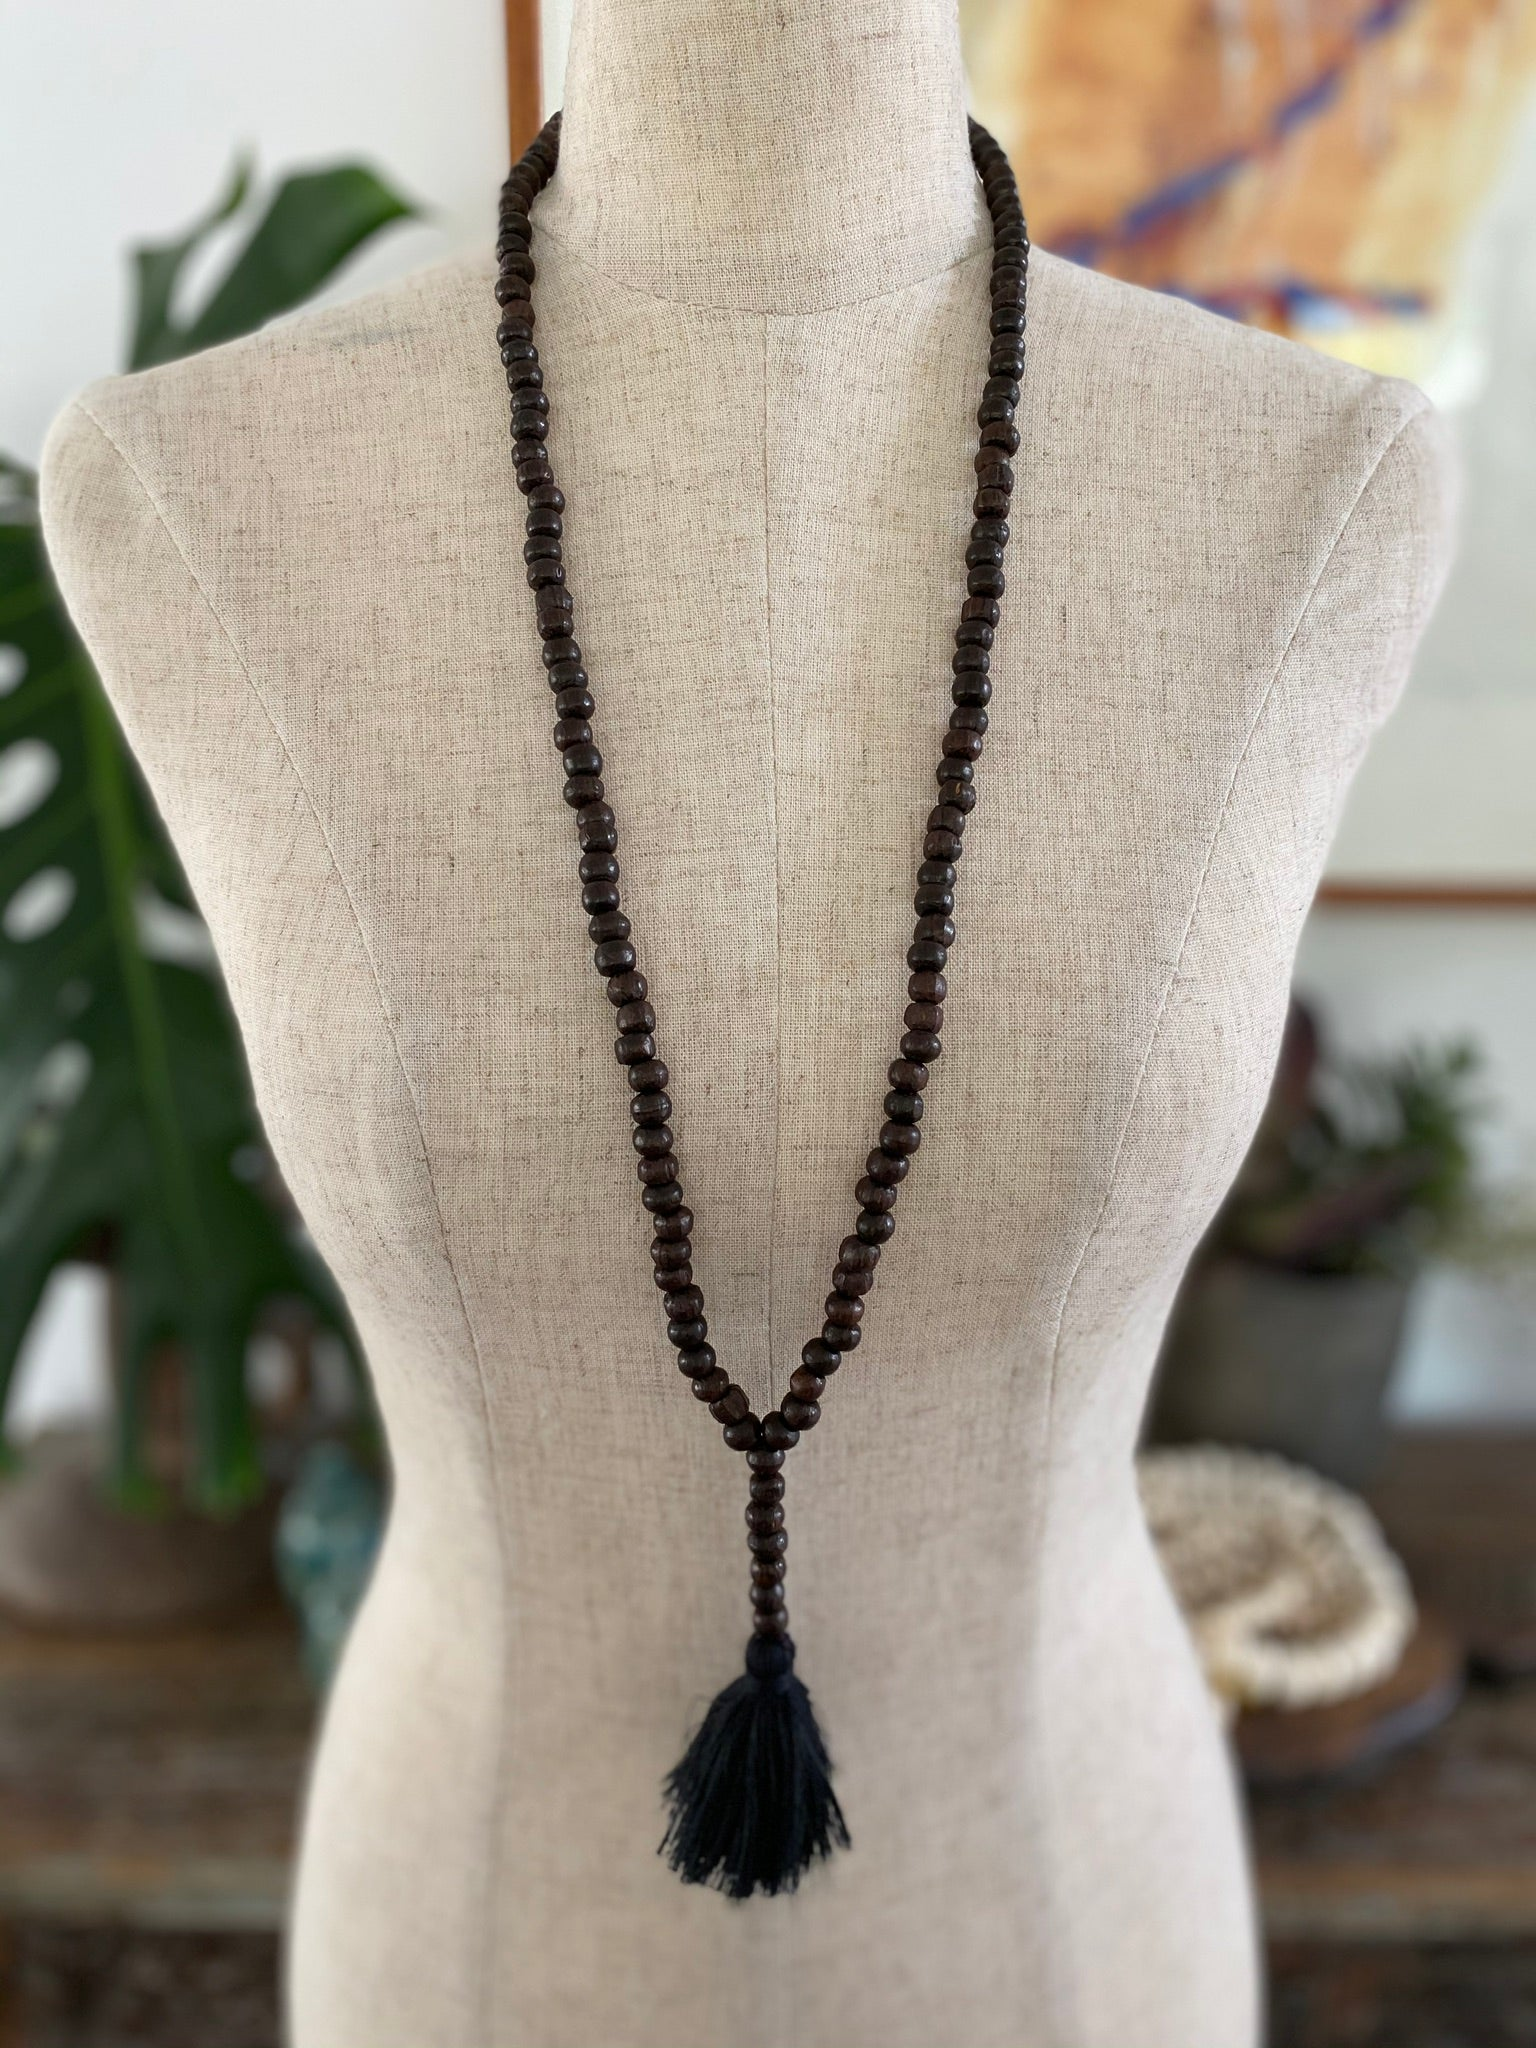 Dark Wooden Bead Tassel - Black